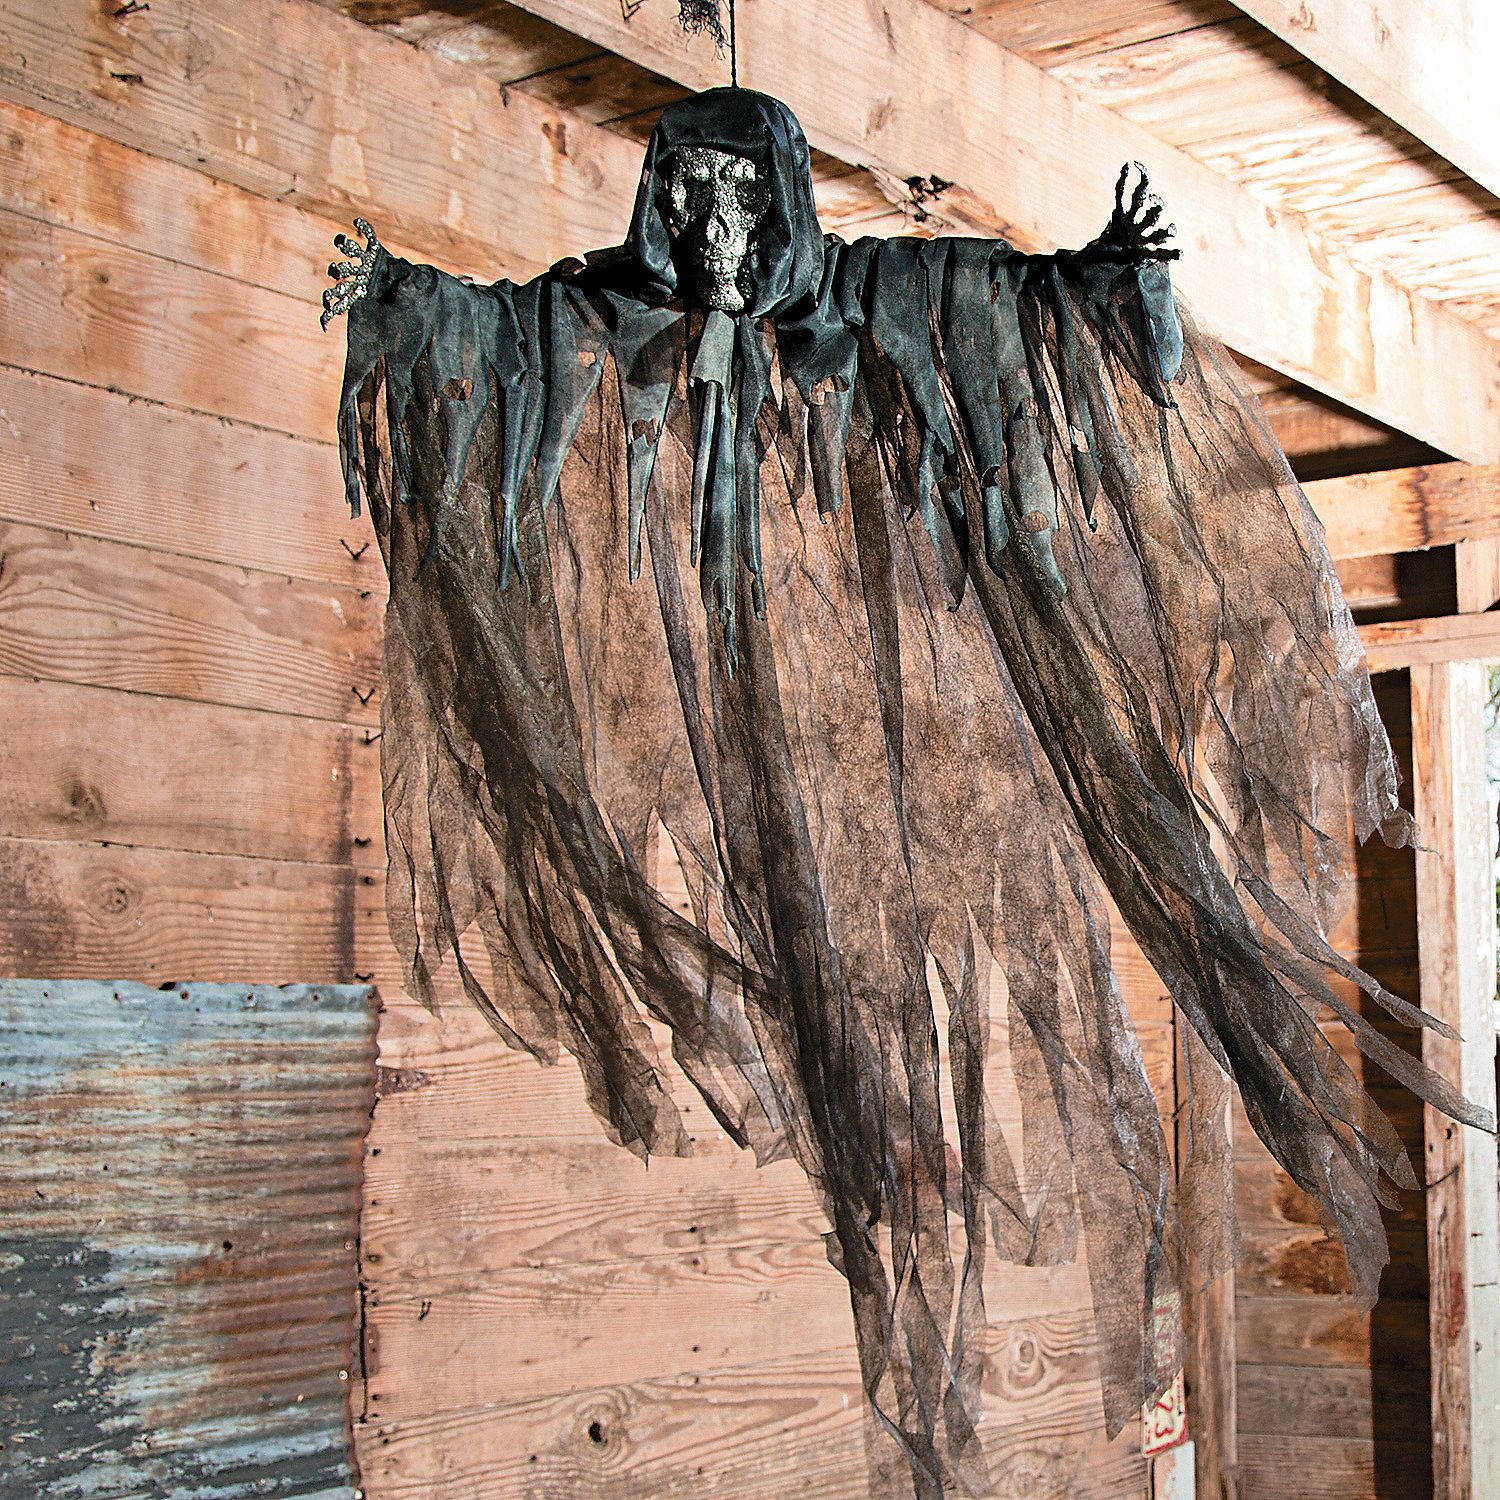 Paint the face and hands black and you have a dementor ...